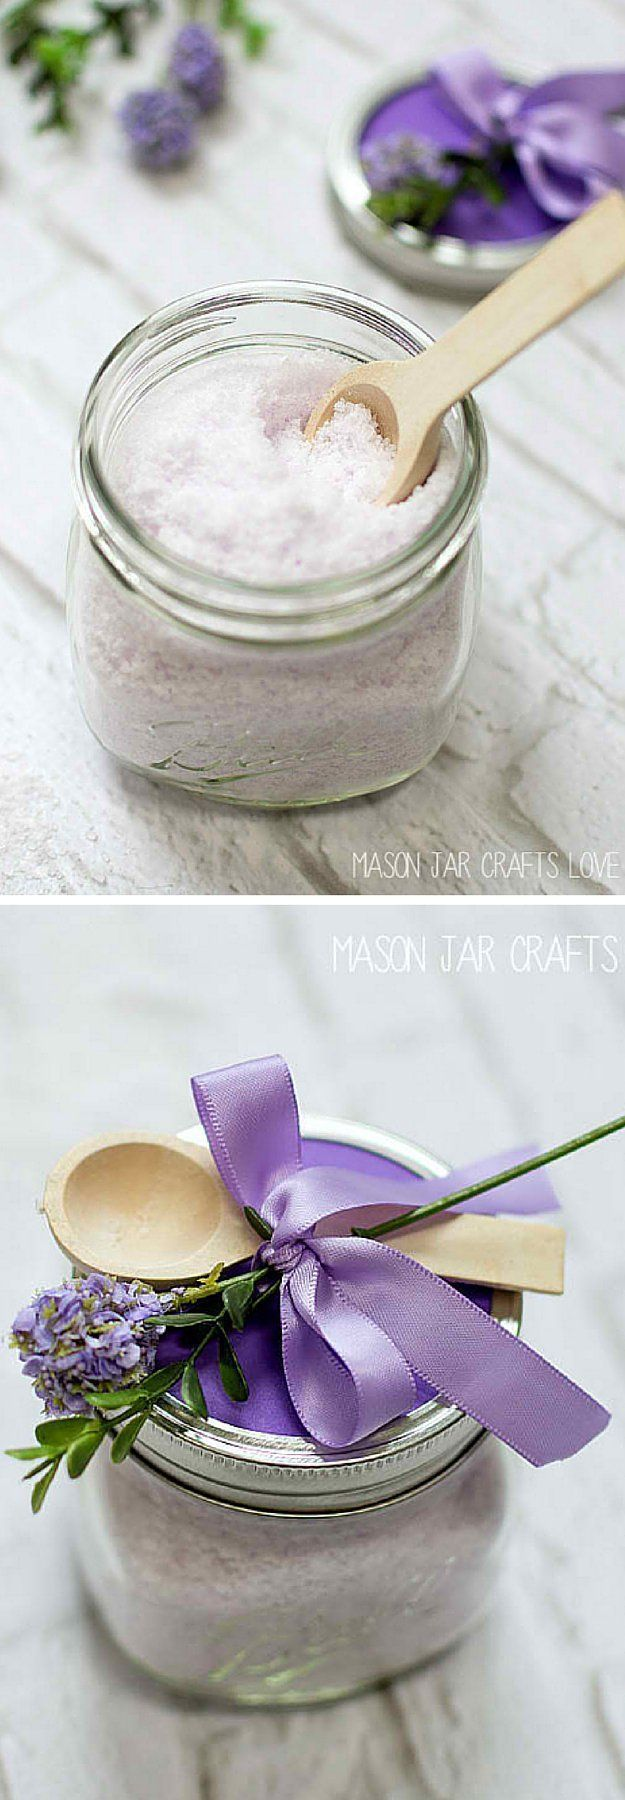 best diy hygiene images on pinterest bath salts soaps and